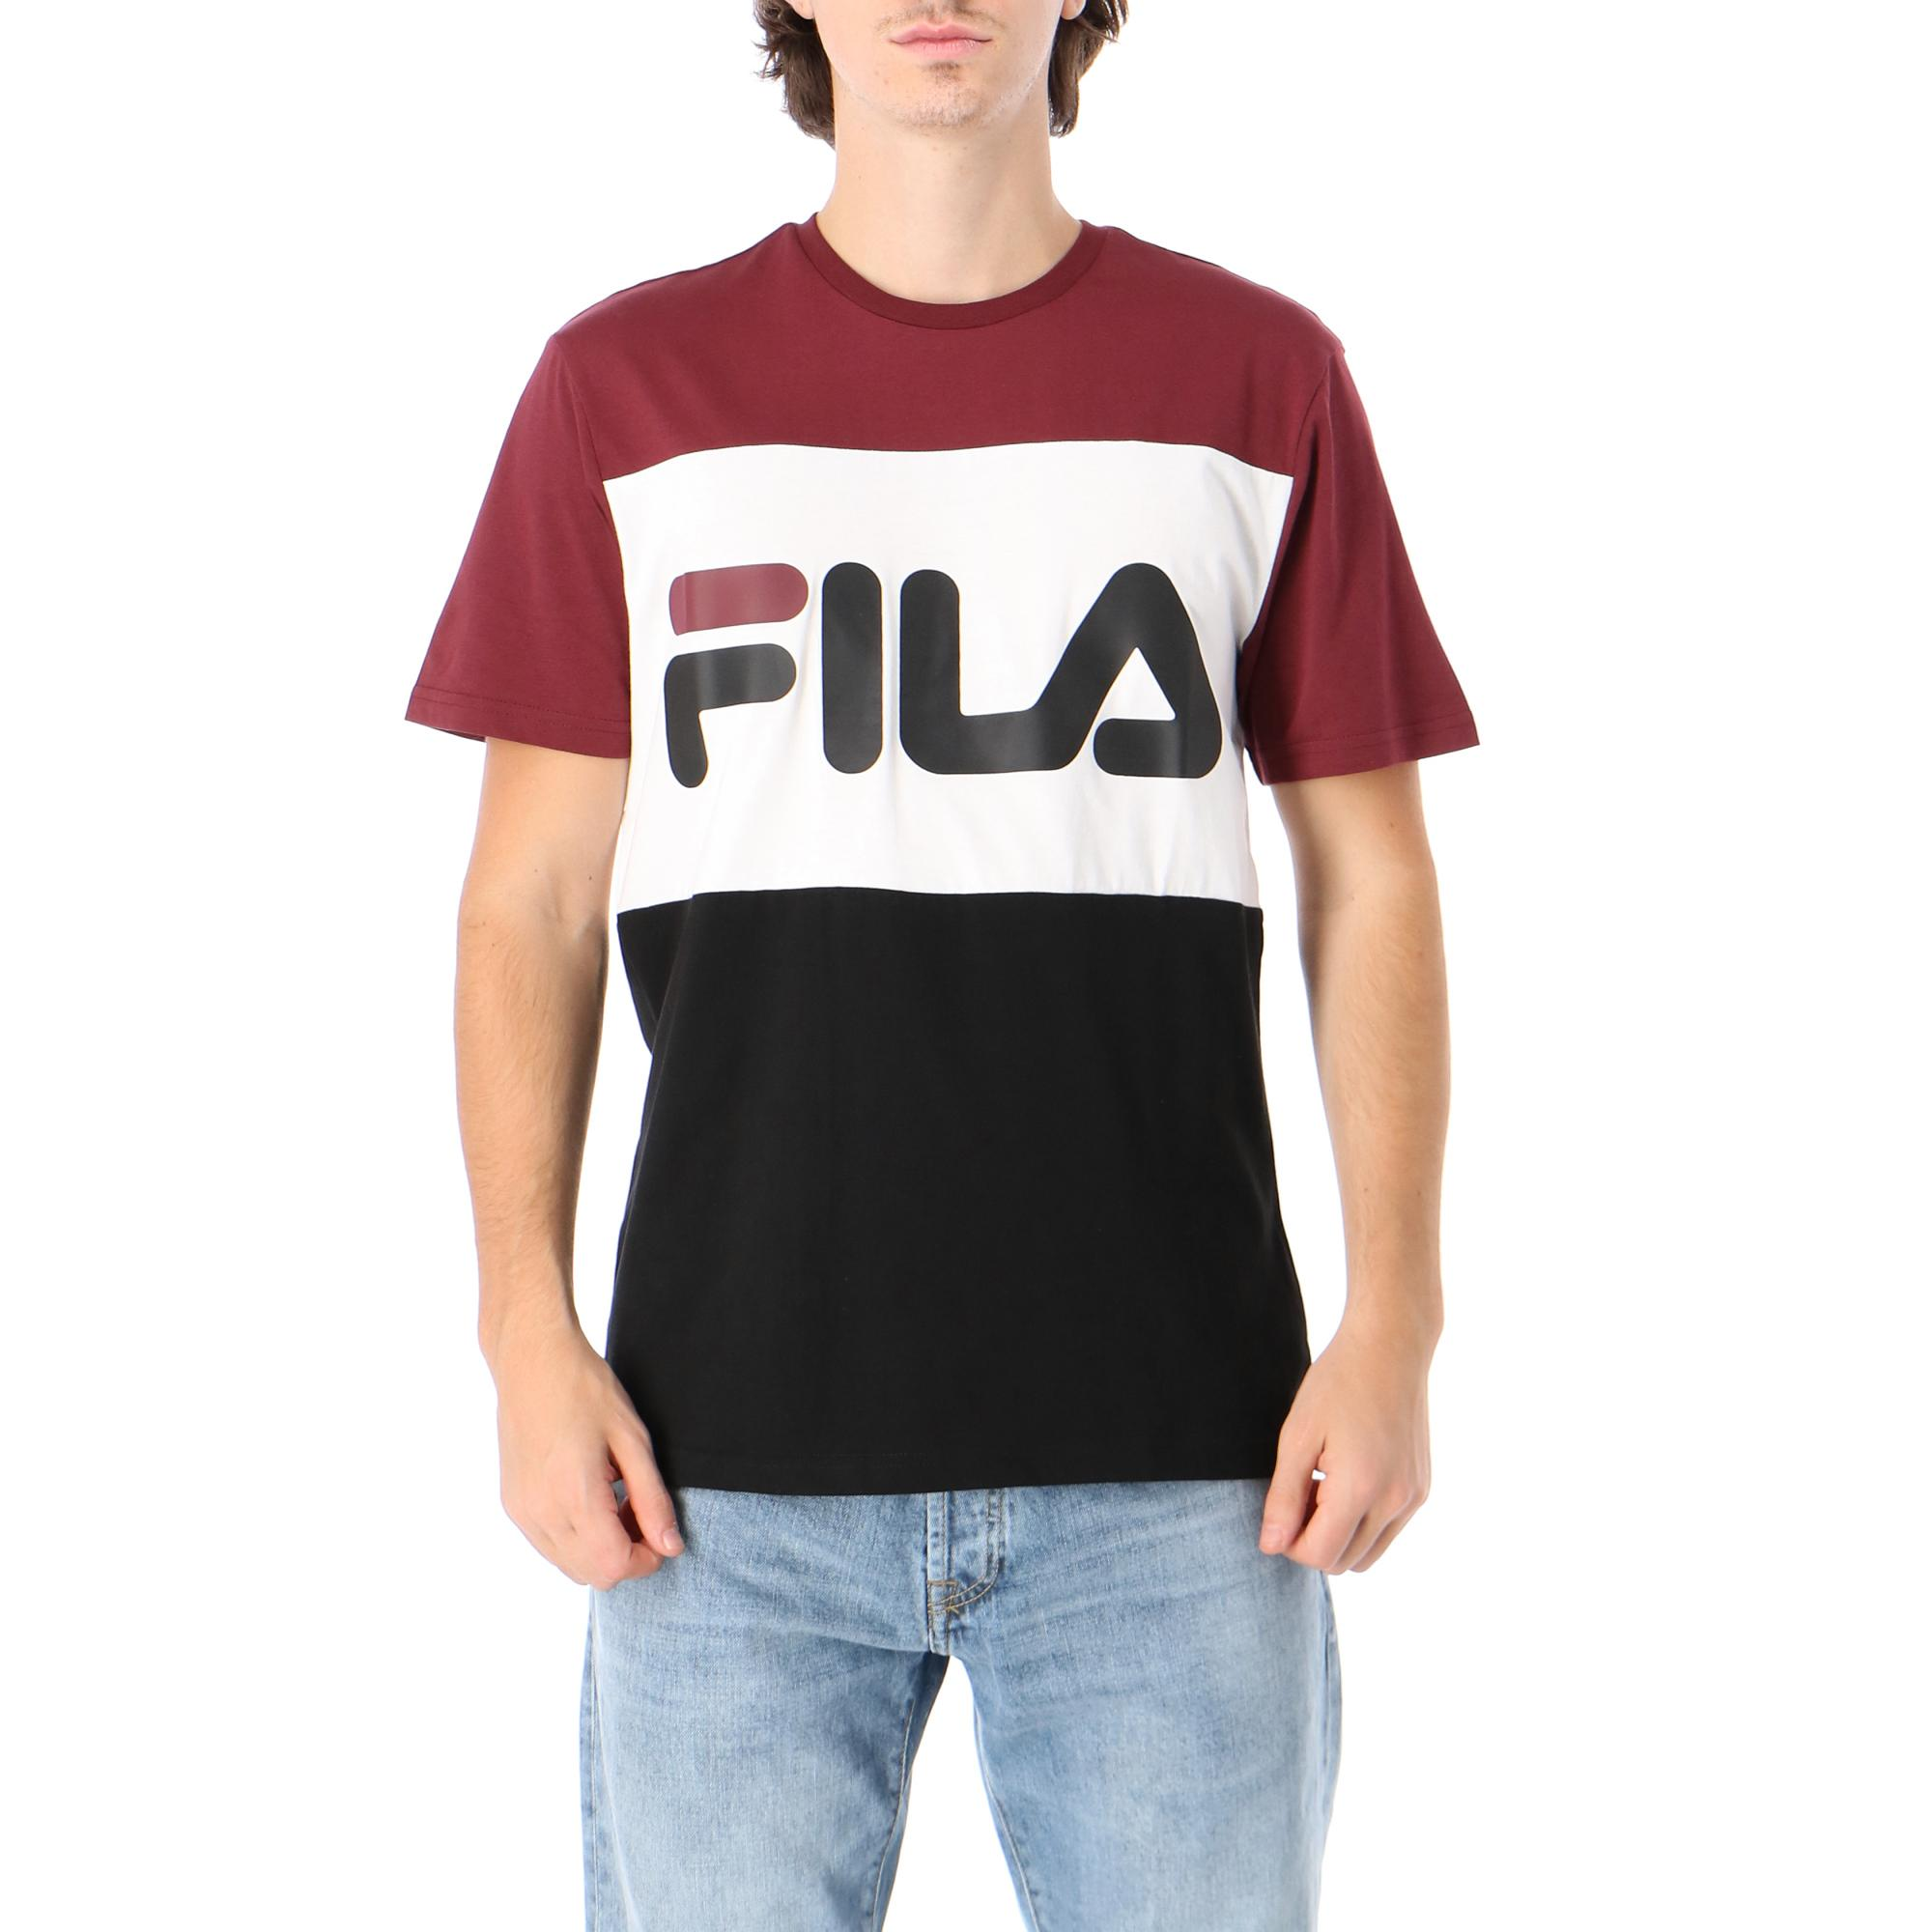 Fila Day Tee Tawny port black bright white